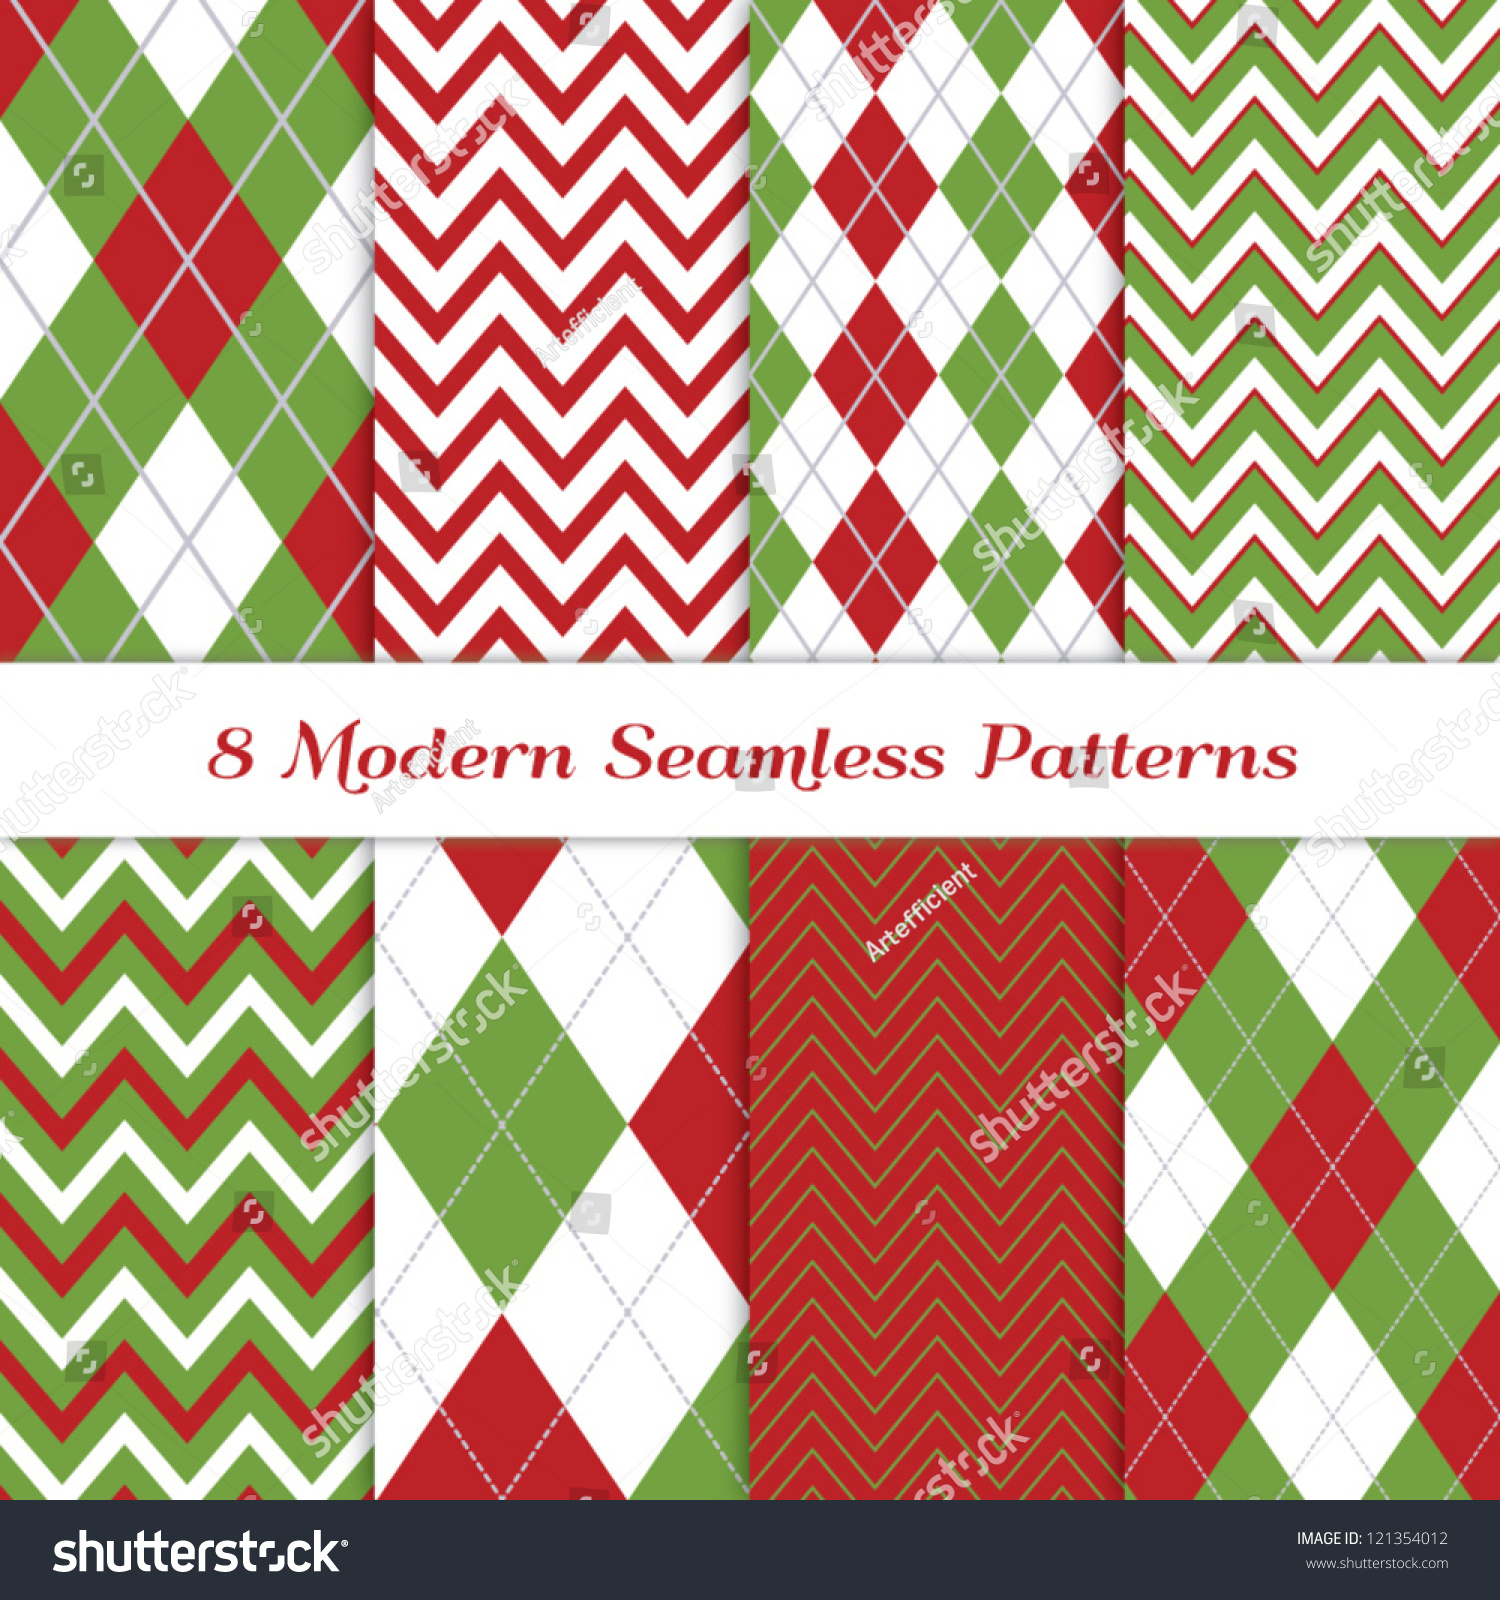 Pics photos merry christmas argyle twitter backgrounds - Classic Christmas Backgrounds 8 Seamless Chevron And Argyle Patterns In Green Dark Red